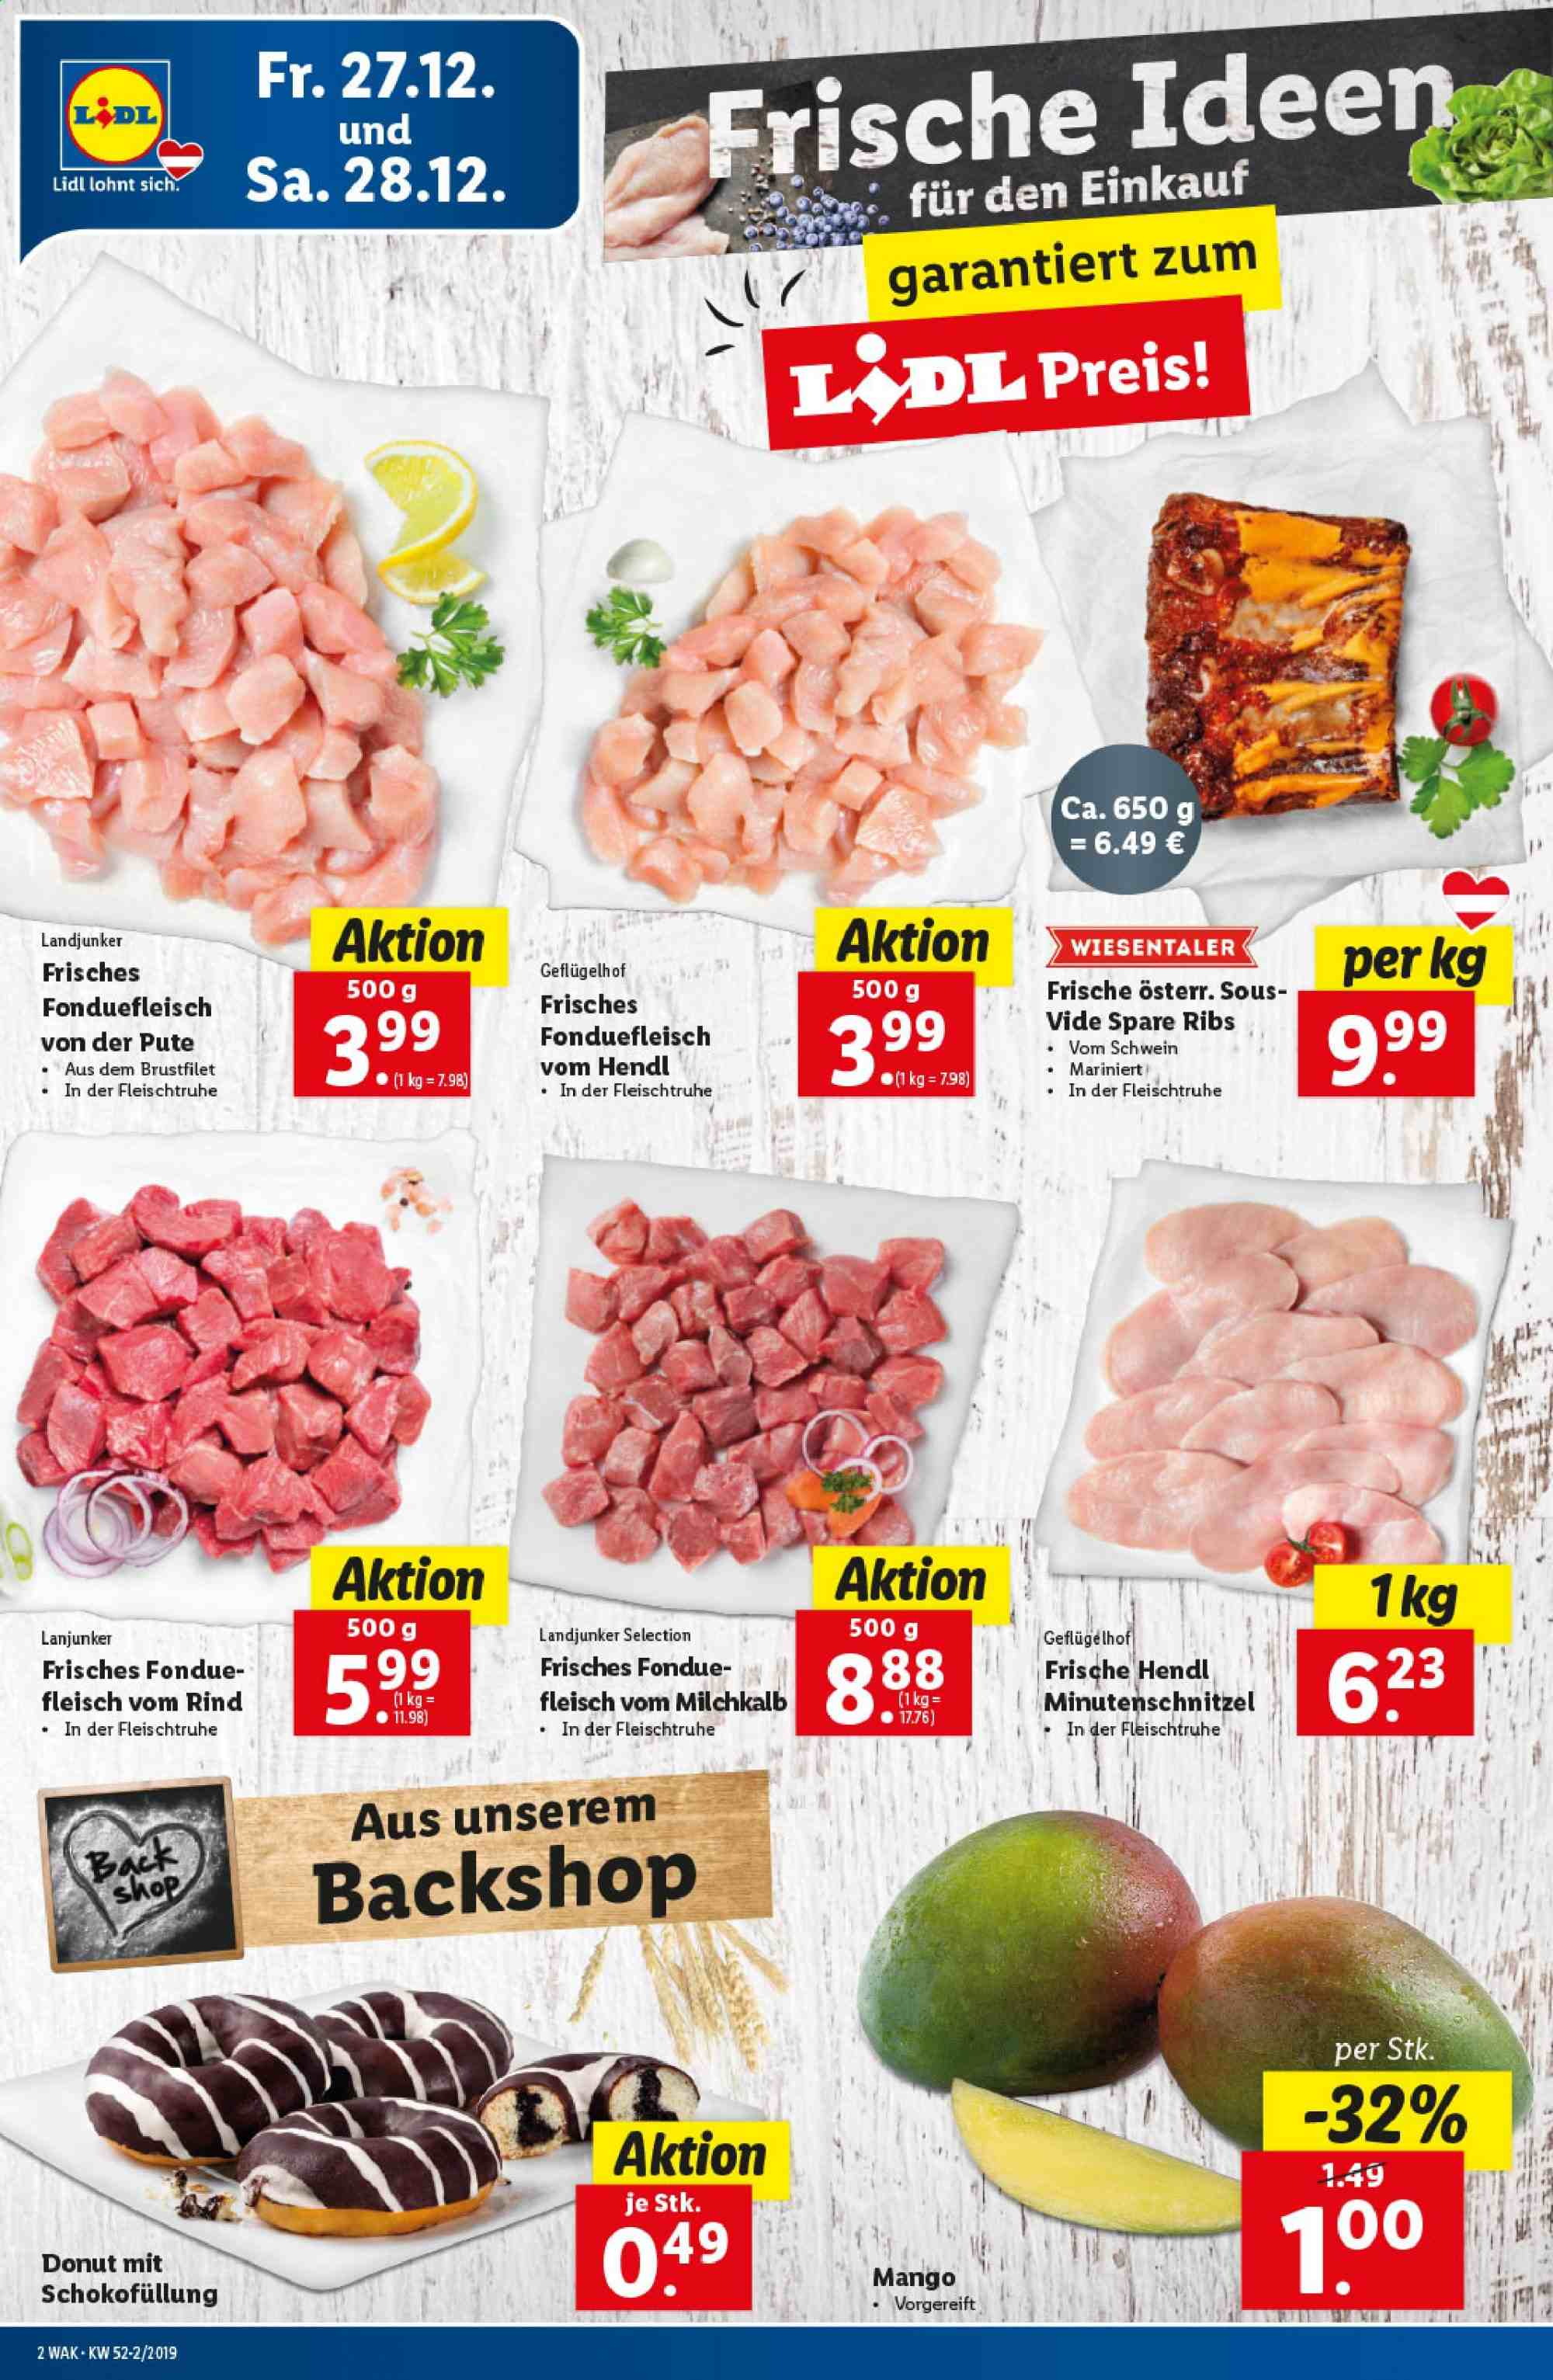 Angebote Lidl - 27.12.2019 - 31.12.2019. Seite 2.